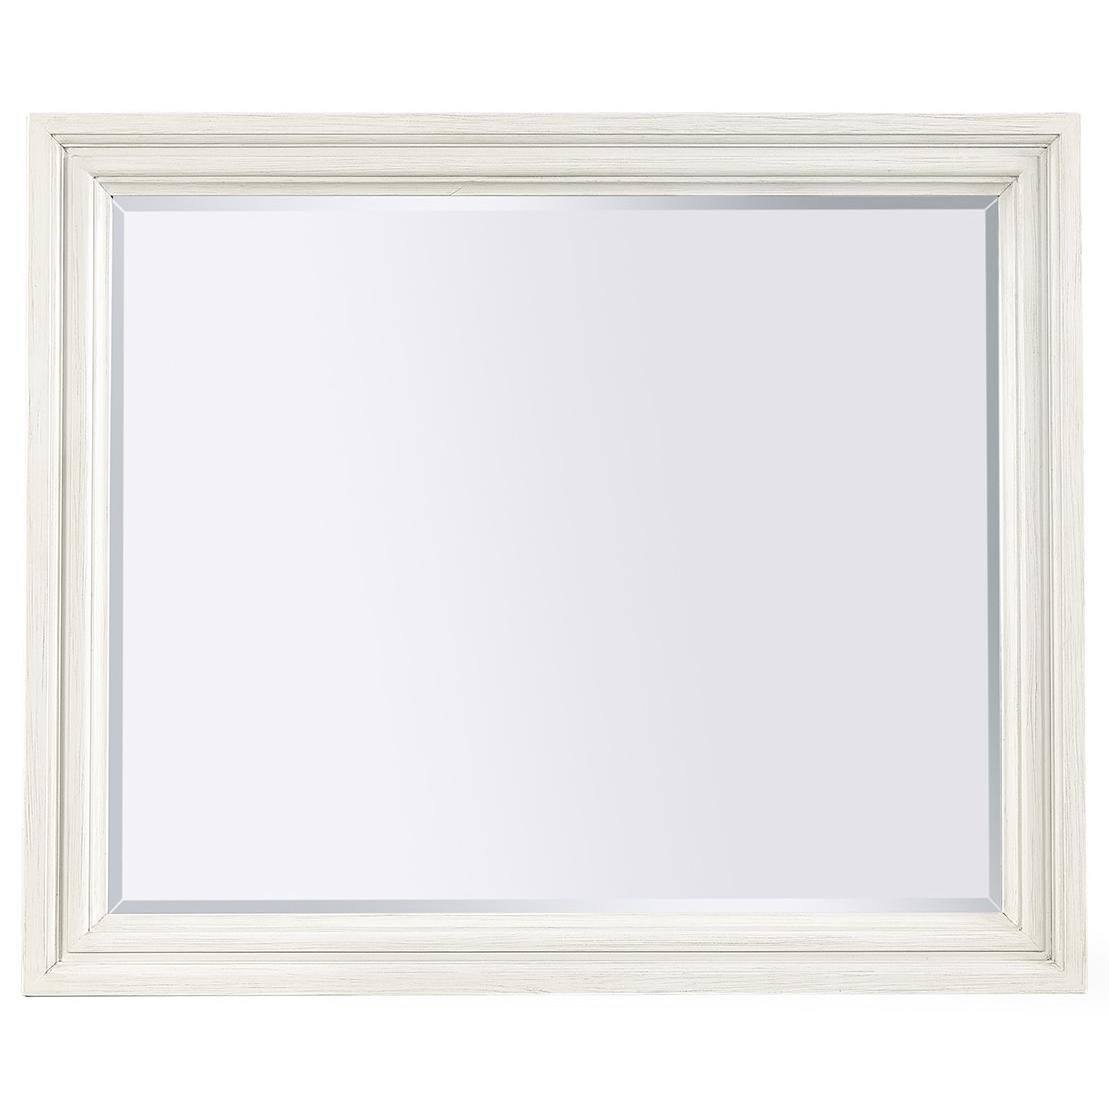 Caraway Mirror  by Aspenhome at Baer's Furniture